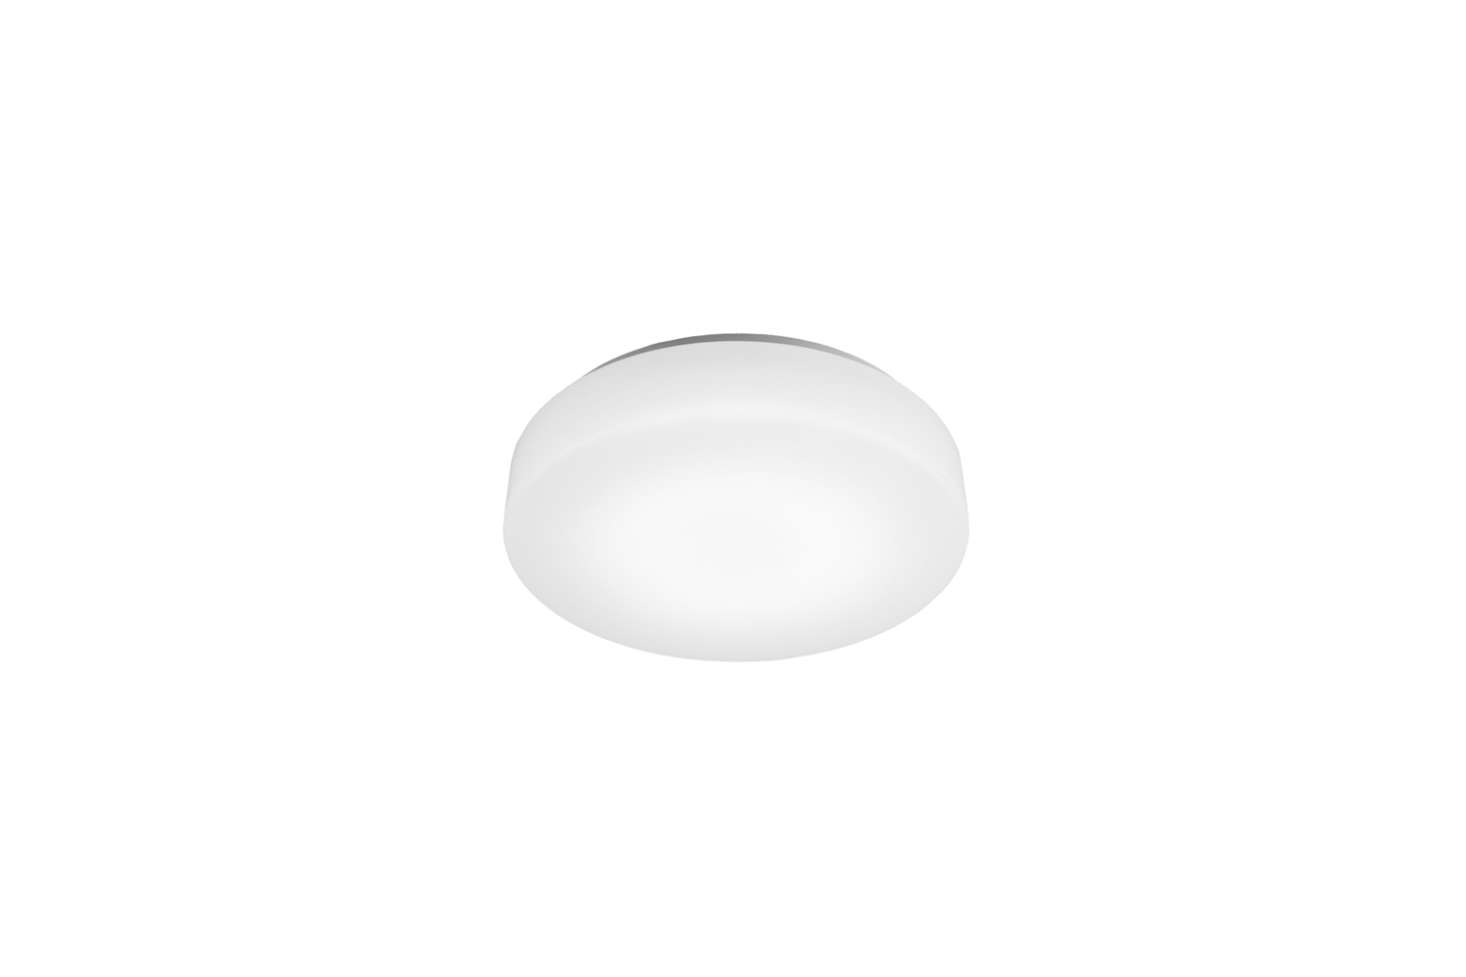 For a flush-mount light similar to the ceiling light in the office, see the WAC Lighting BLO LED Ceiling Light ($7